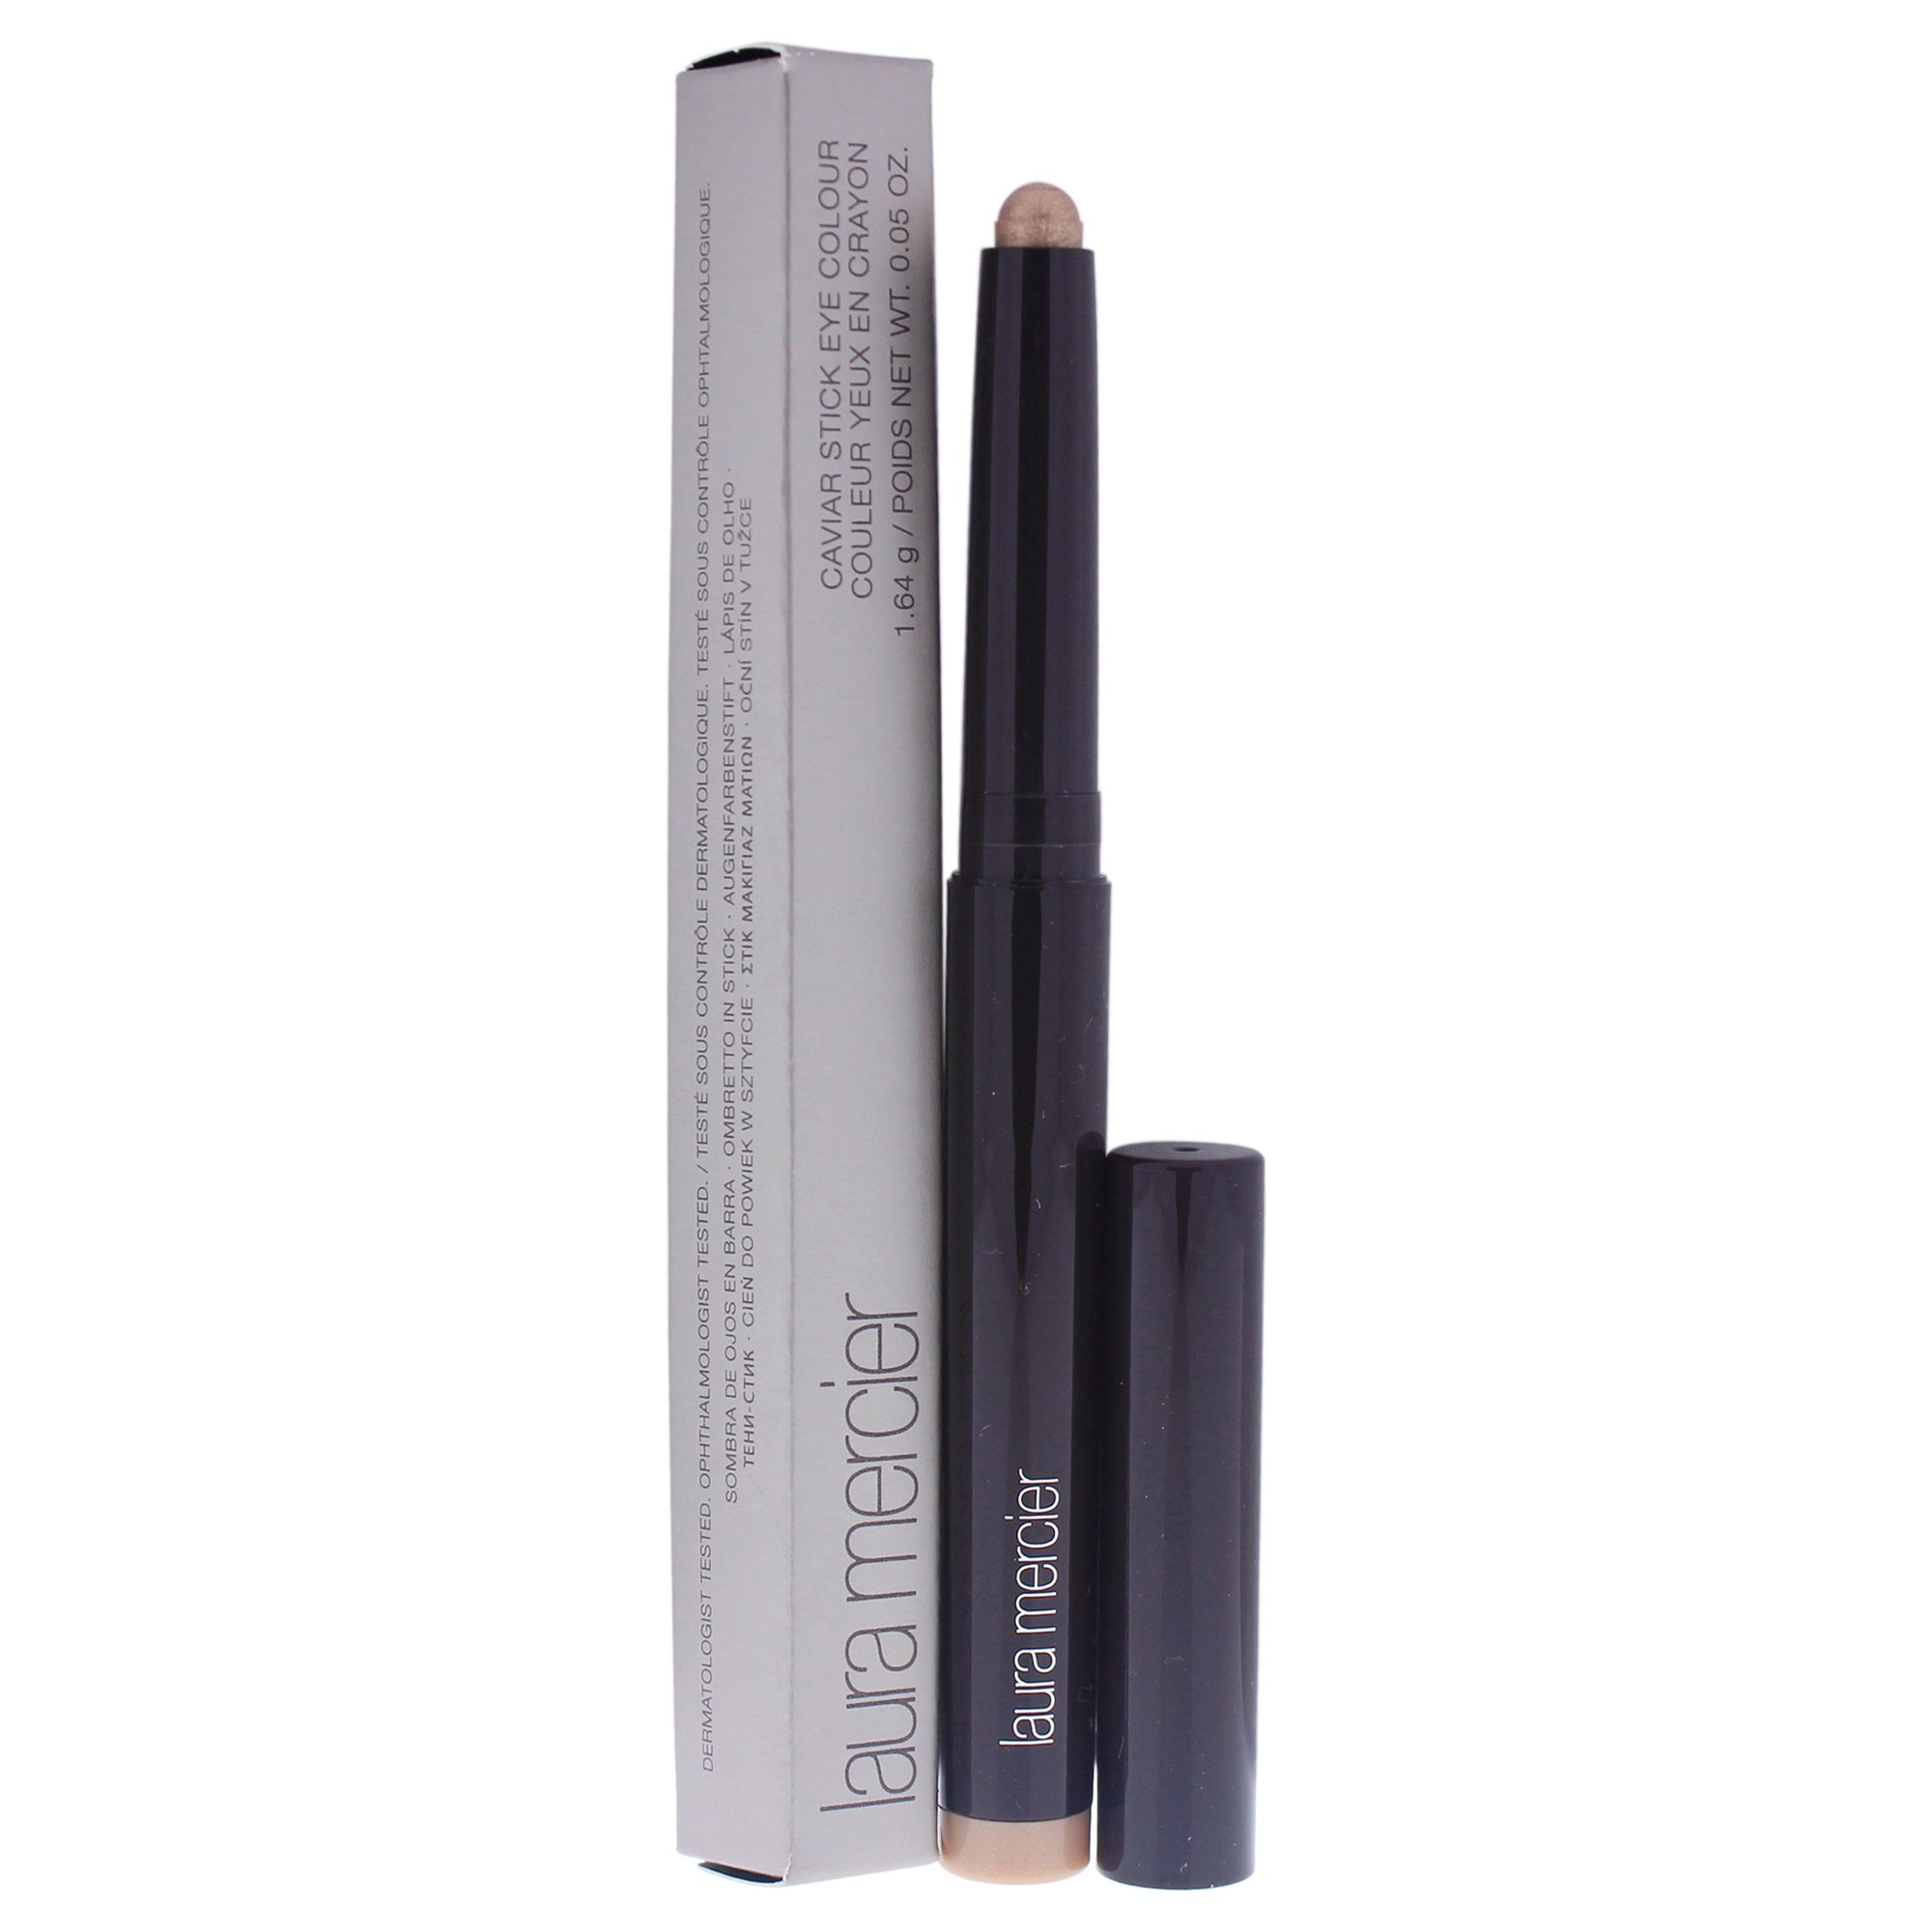 Laura Mercier Caviar Stick Eye Color, Sugar Frost, 0.05 Ounce